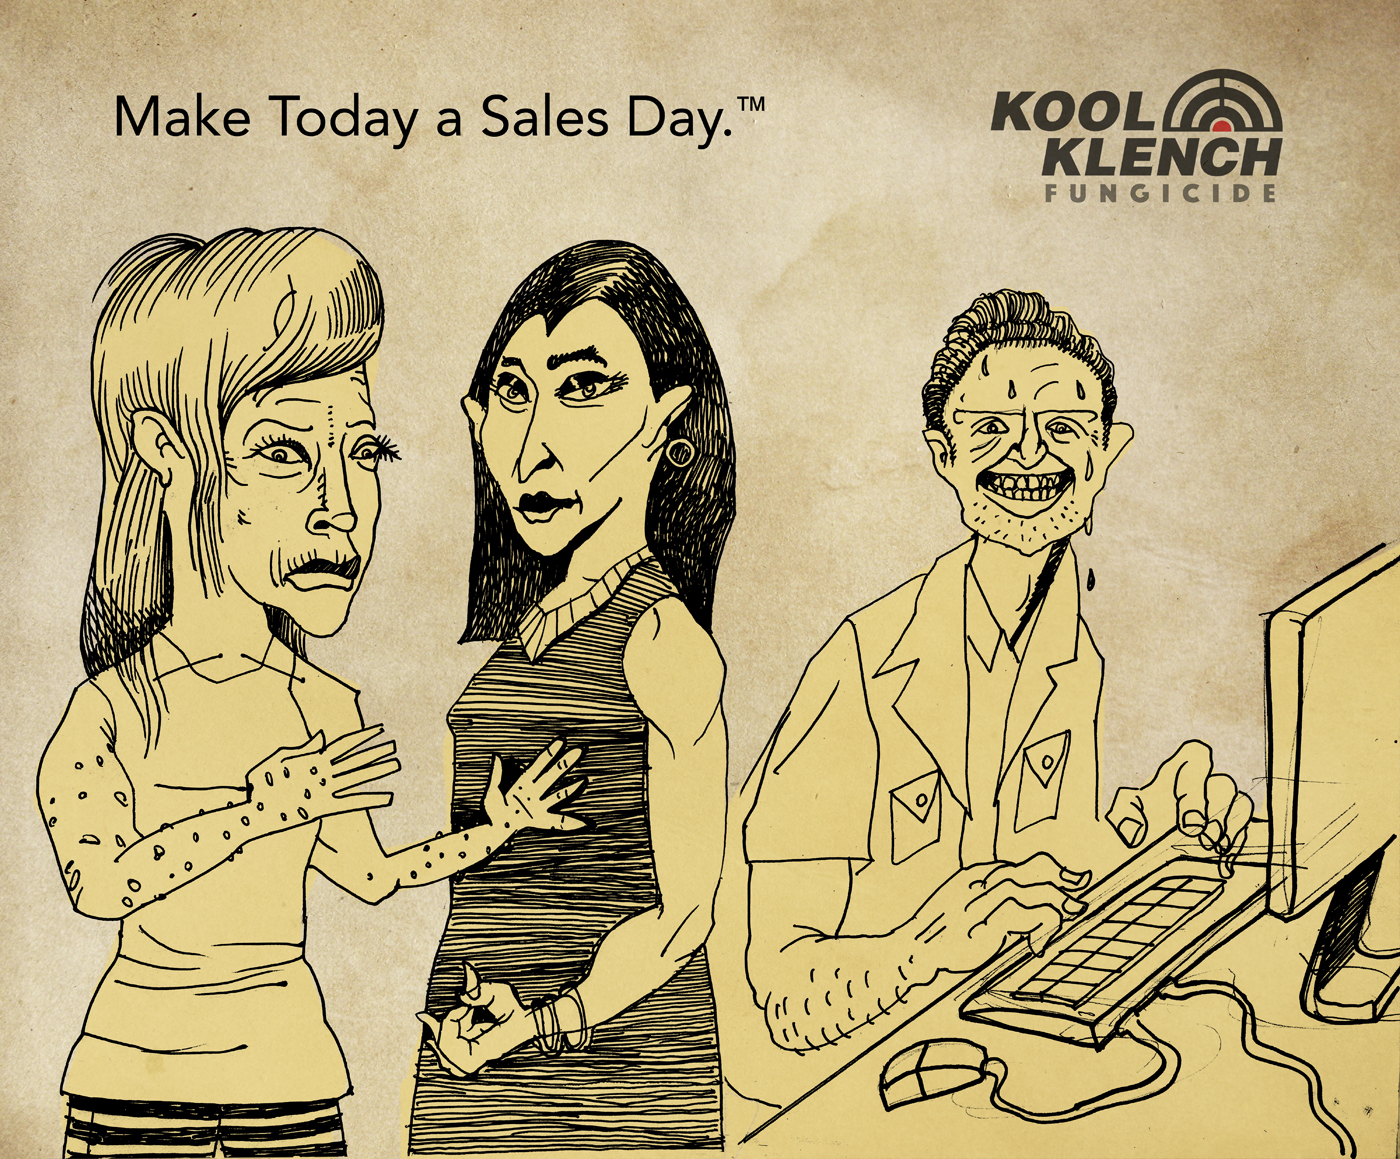 Your team can produce results even though it's Friday. – Kool Klench.